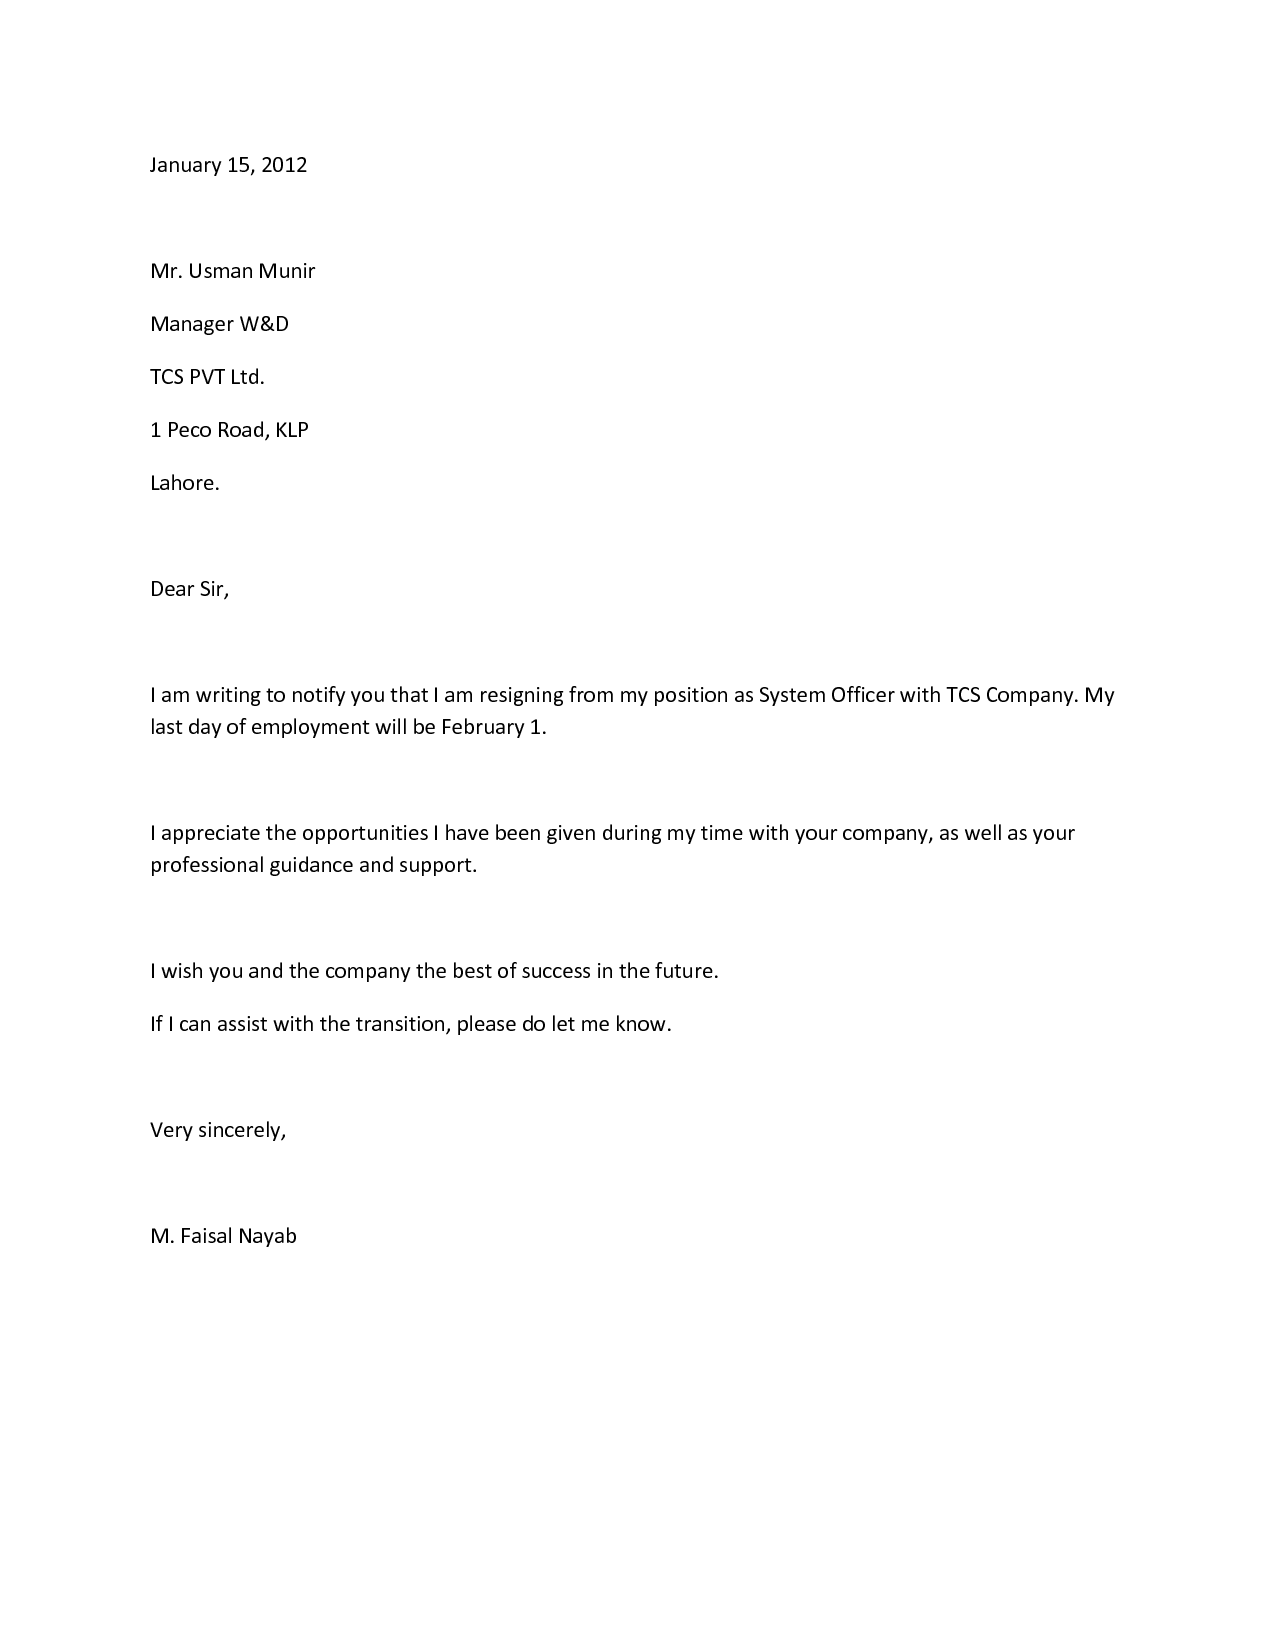 Resignation Letter Samples0009 Future Ideas Pinterest – Template for Resignation Letter Sample